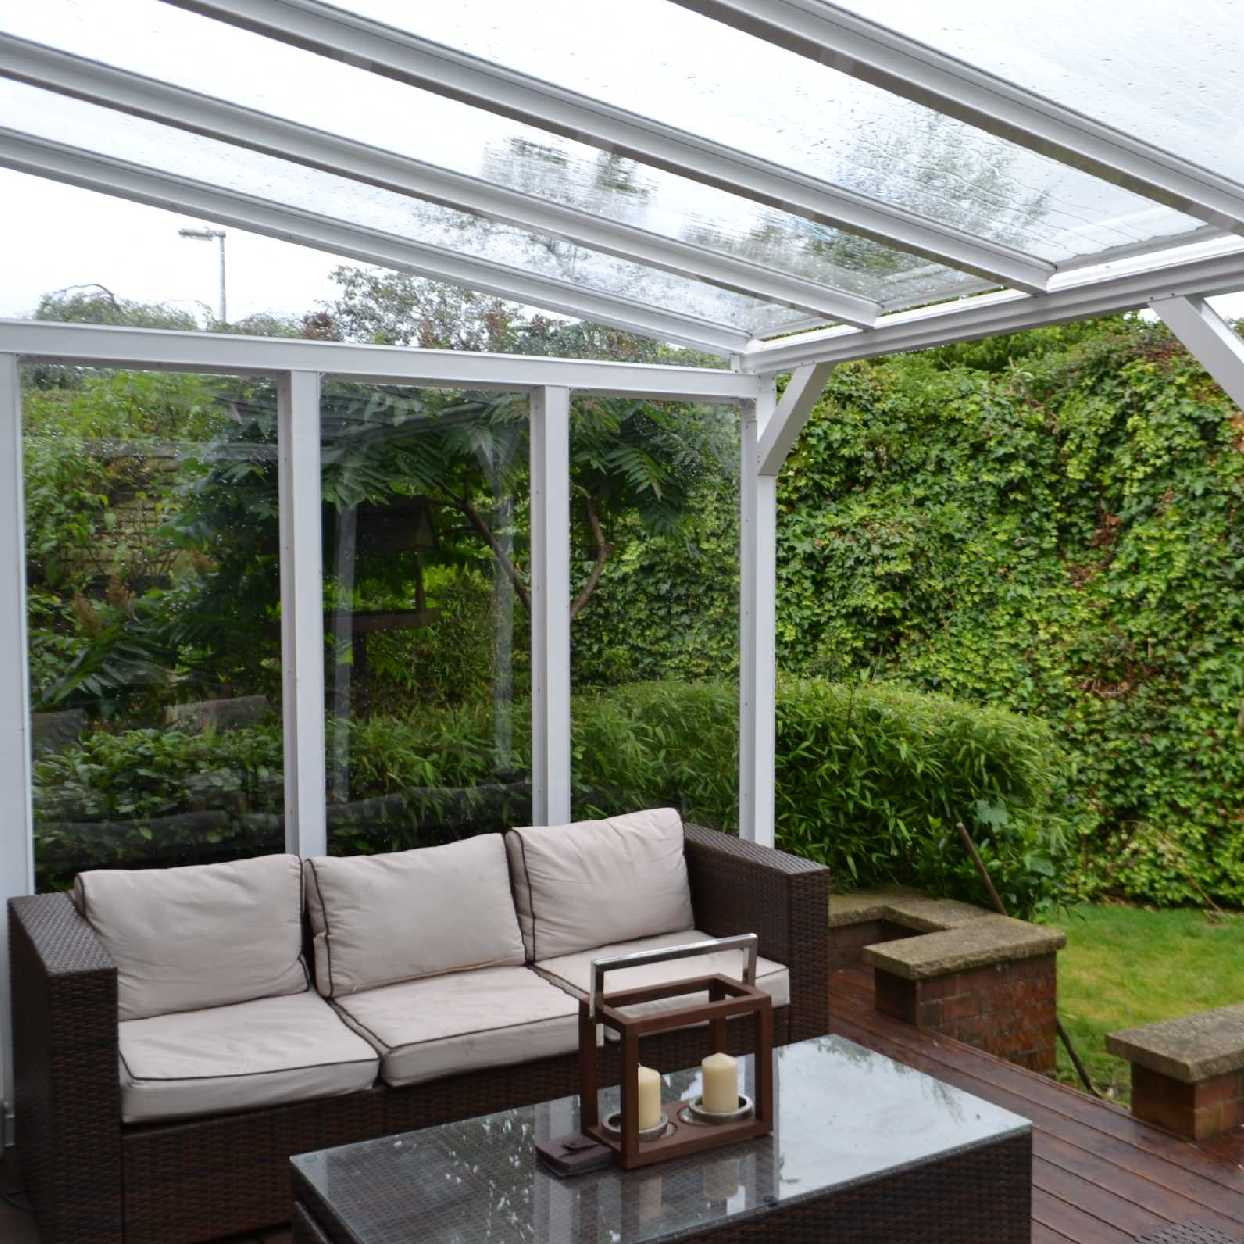 Great selection of Omega Smart White Lean-To Canopy with 16mm Polycarbonate Glazing - 9.9m (W) x 3.5m (P), (5) Supporting Posts